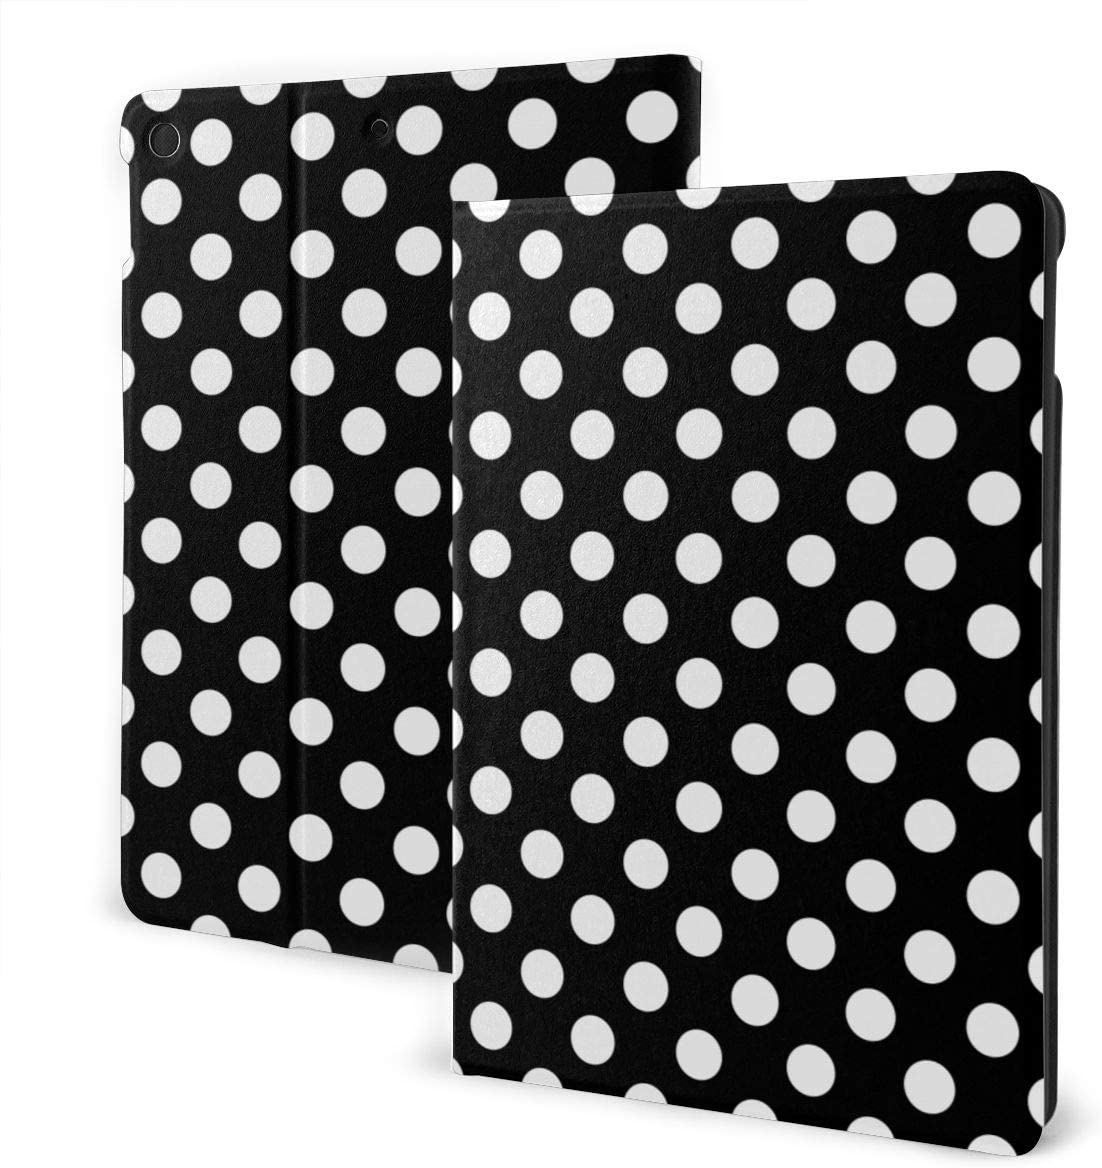 White Black Polka Dot for iPad 10.2 Case 2019 for iPad 7th Generation Case Premium Shockproof Case PU Leather Protective Smart Cover - Auto Wake/Sleep, Multiple Viewing Angles, Magnetic Closure